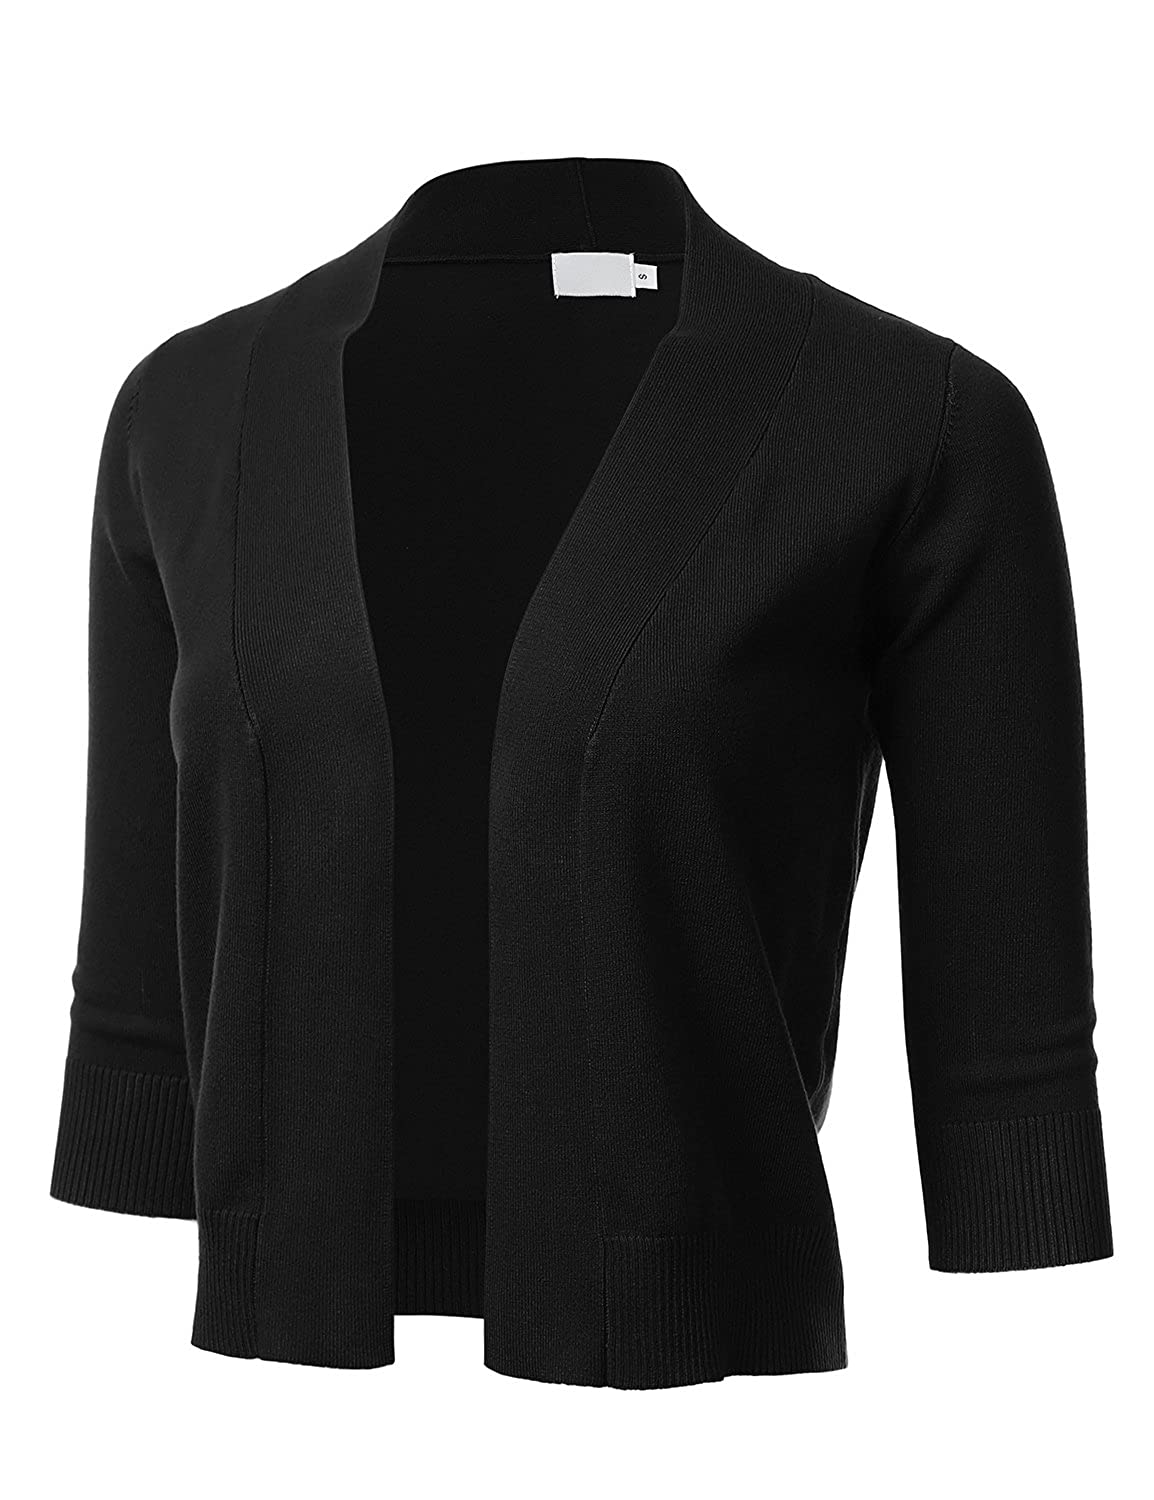 Calvin Klein Women's Shrug Sweater at Amazon Women's Clothing ...